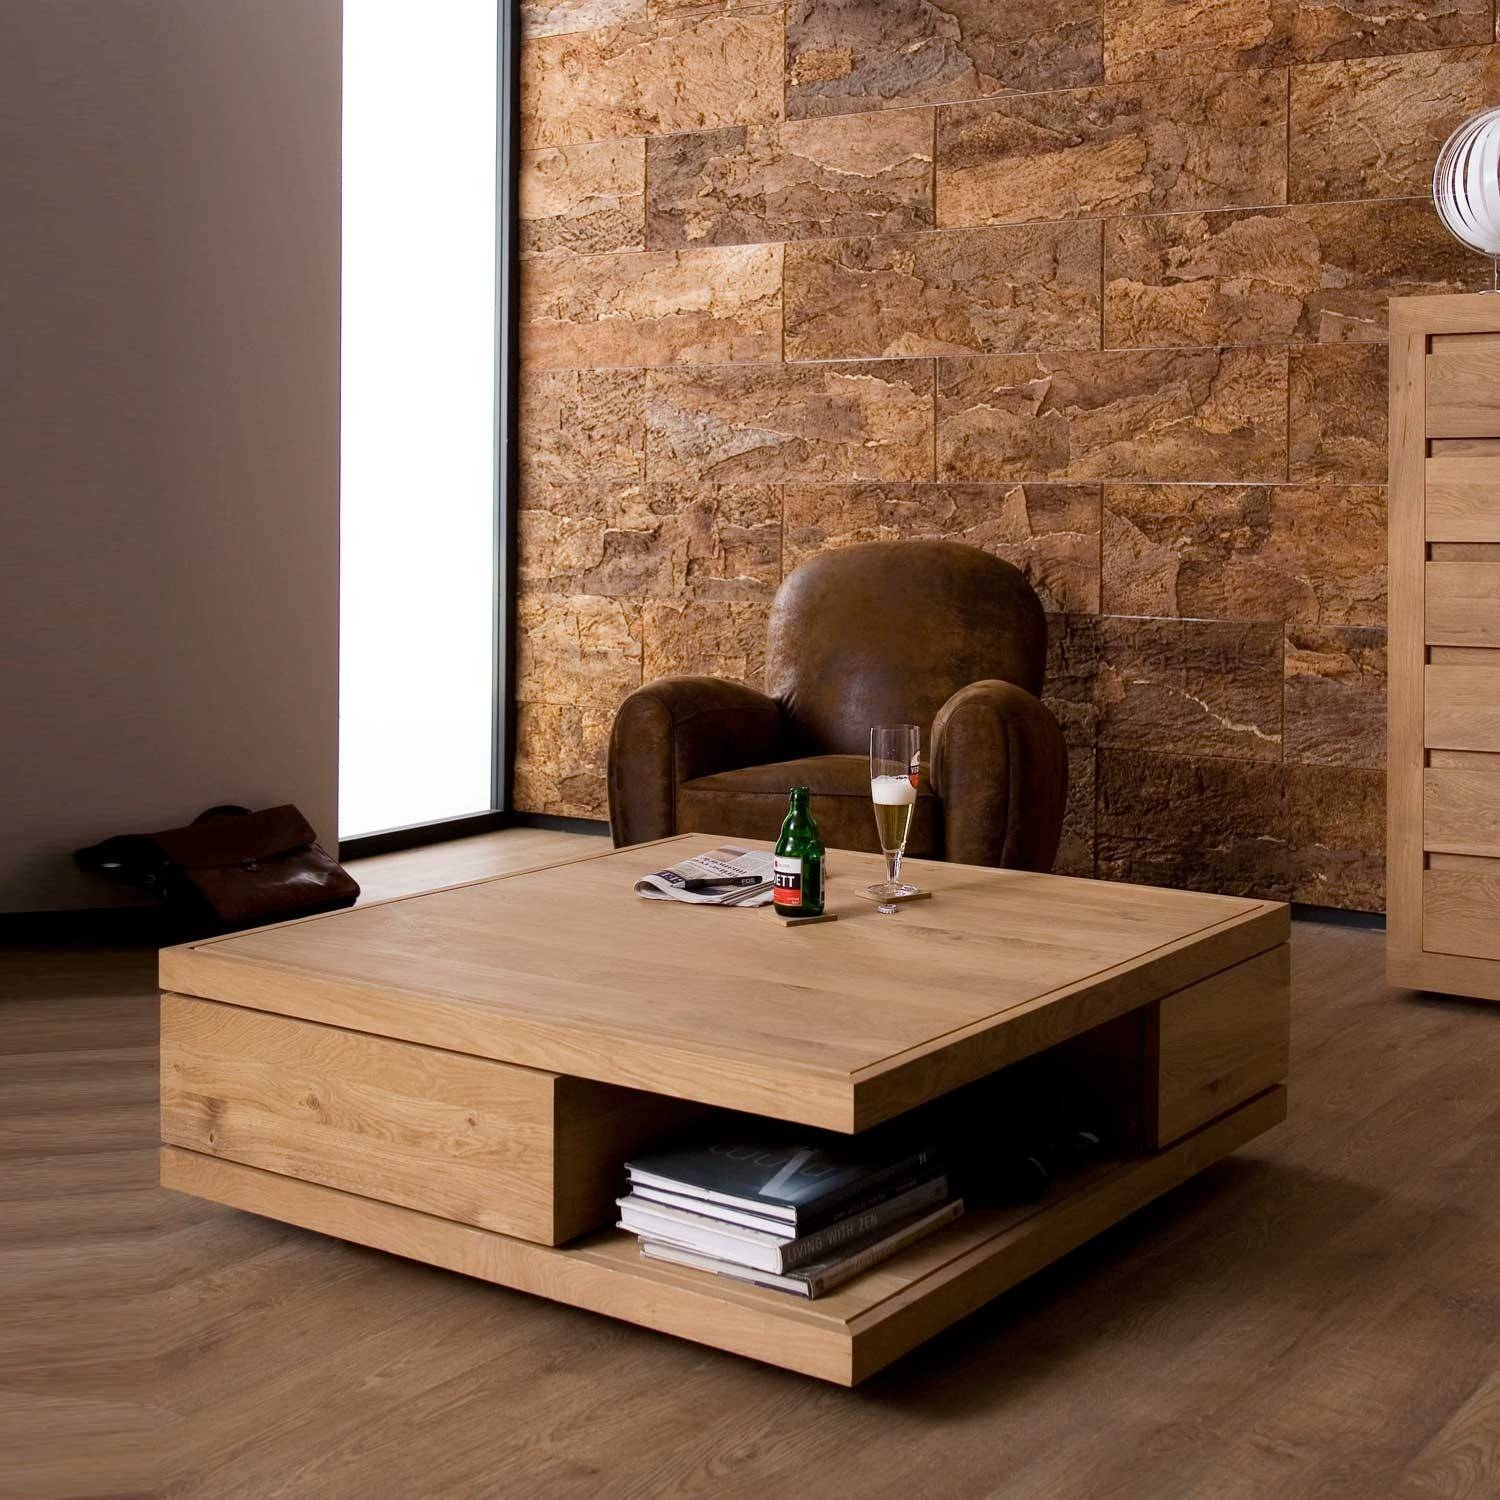 Oak Flat Coffee Tables Contemporary Wooden Coffee Tables Low Level intended for Low Square Wooden Coffee Tables (Image 25 of 30)